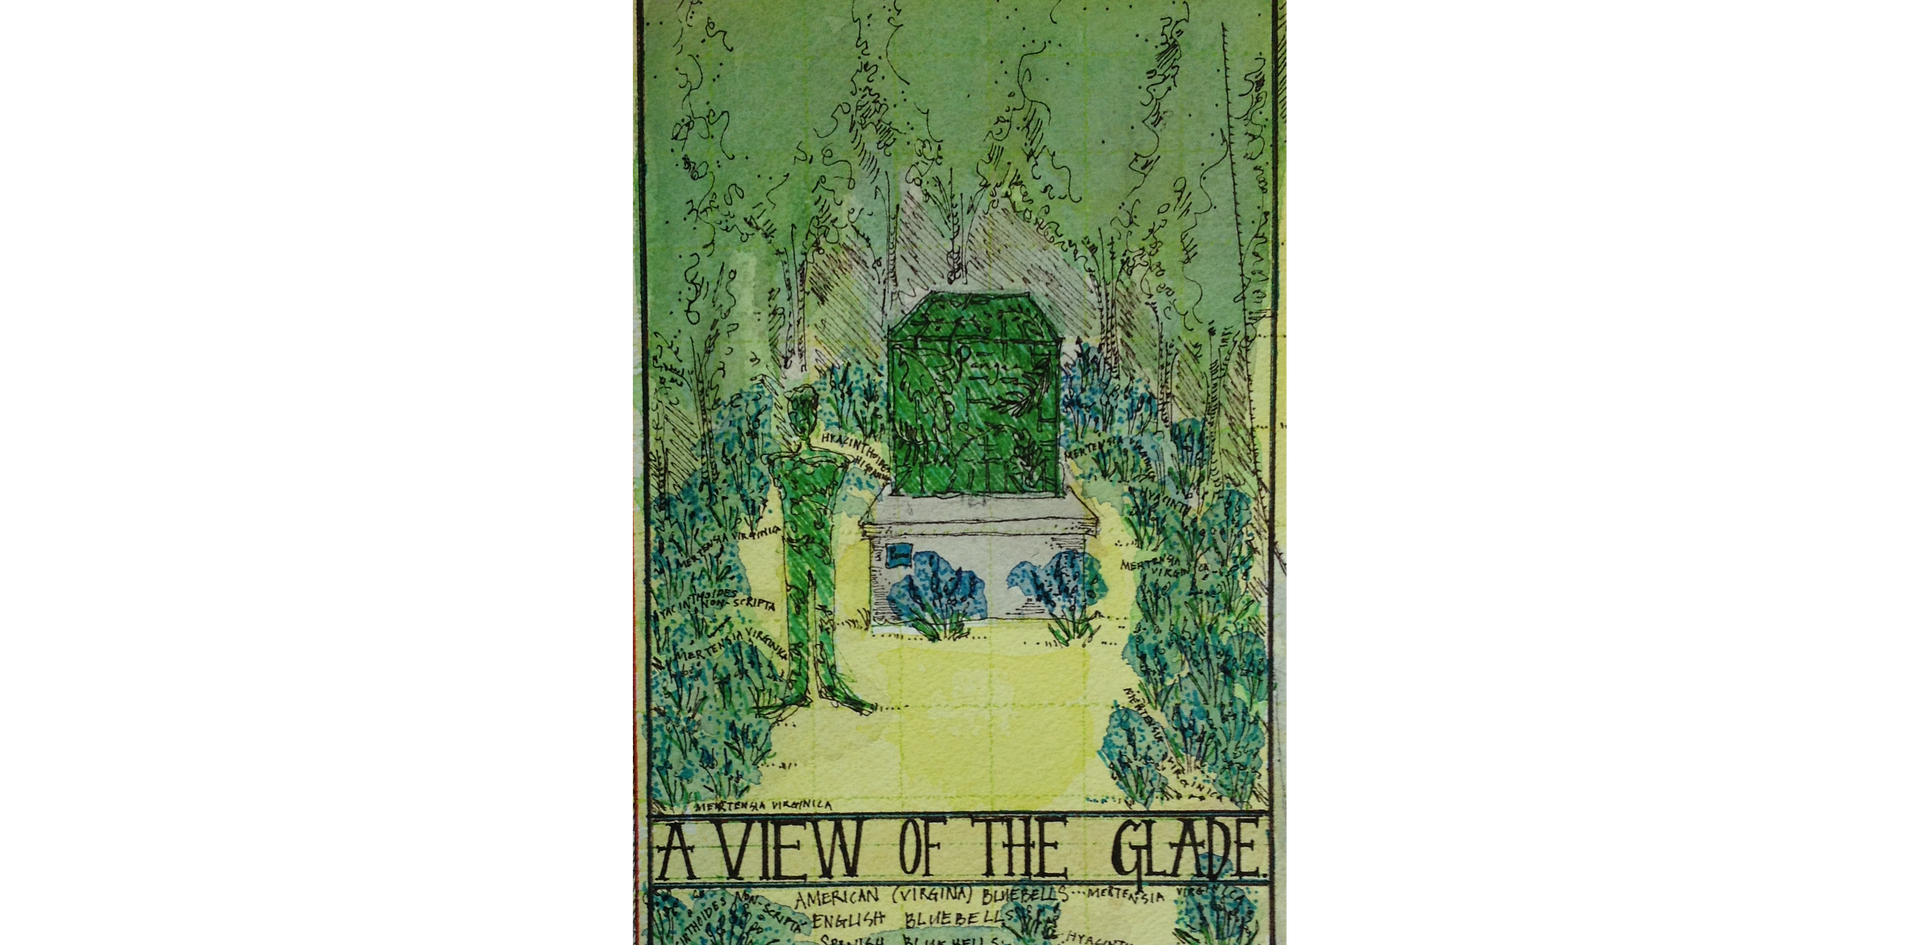 Masterplan Detail: A View of the Glade